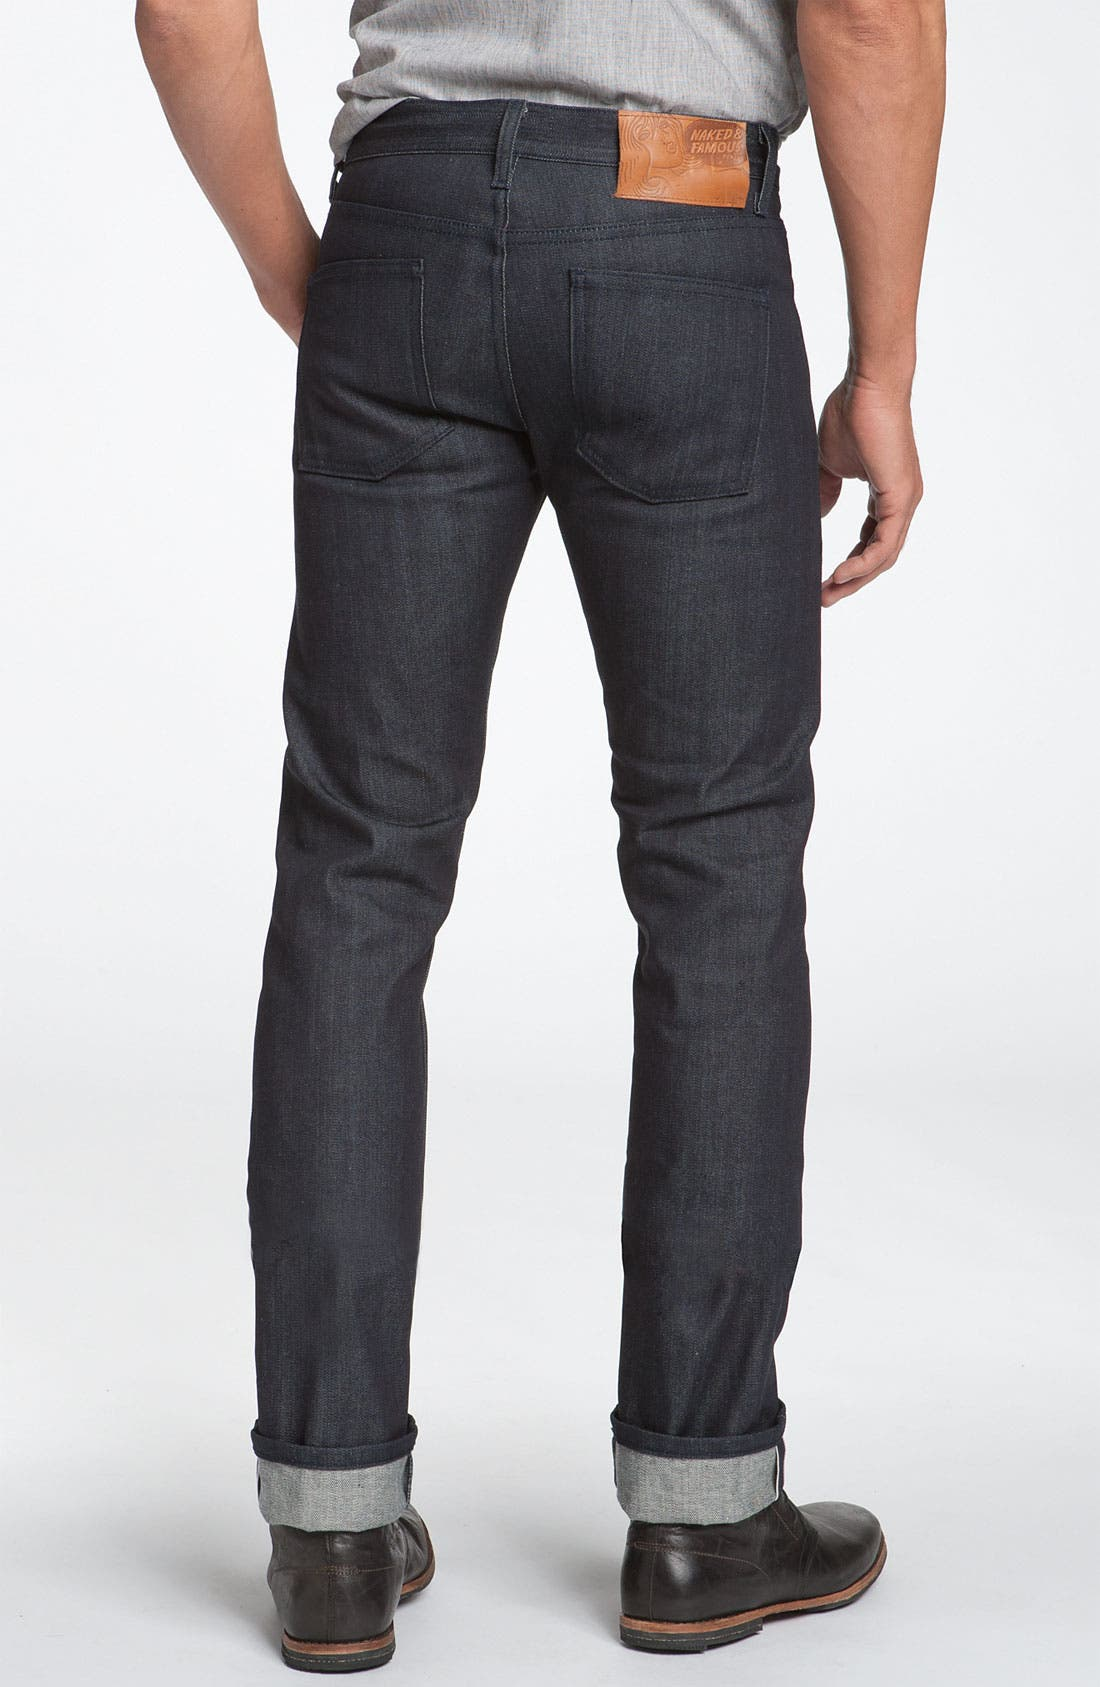 Naked & Famous 'Skinny Guy' Jeans,                             Main thumbnail 1, color,                             401